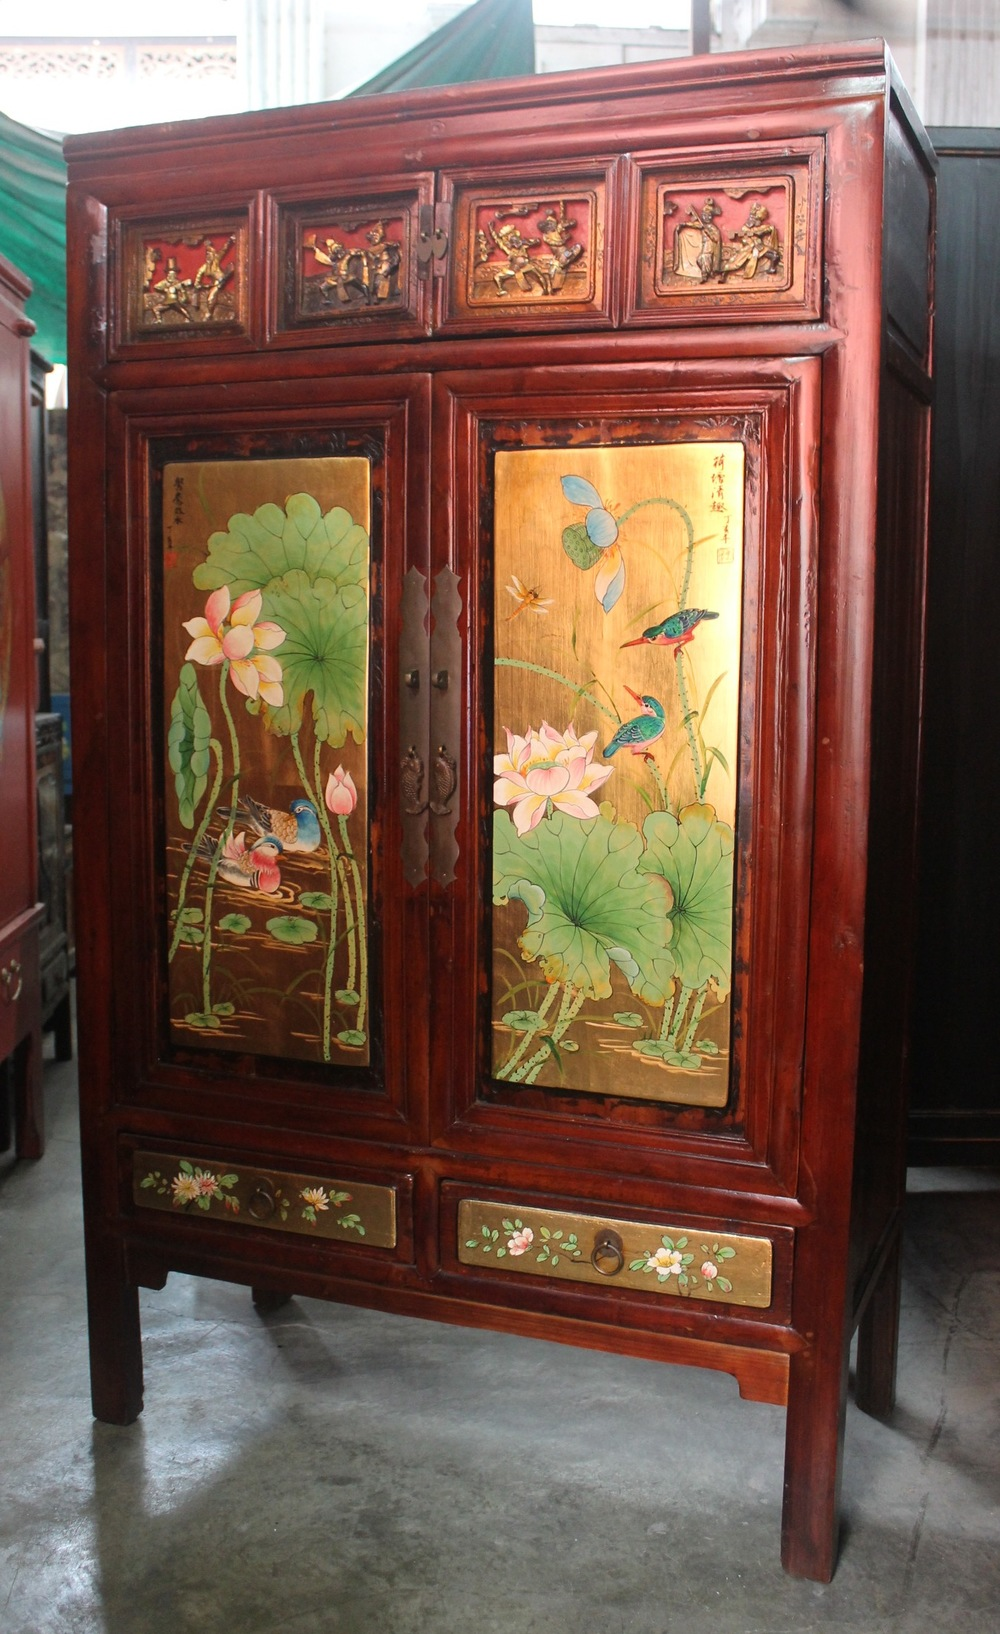 Cabinet with carvings and painting from Wenzhou. Now on sale at S$800.00. SOLD